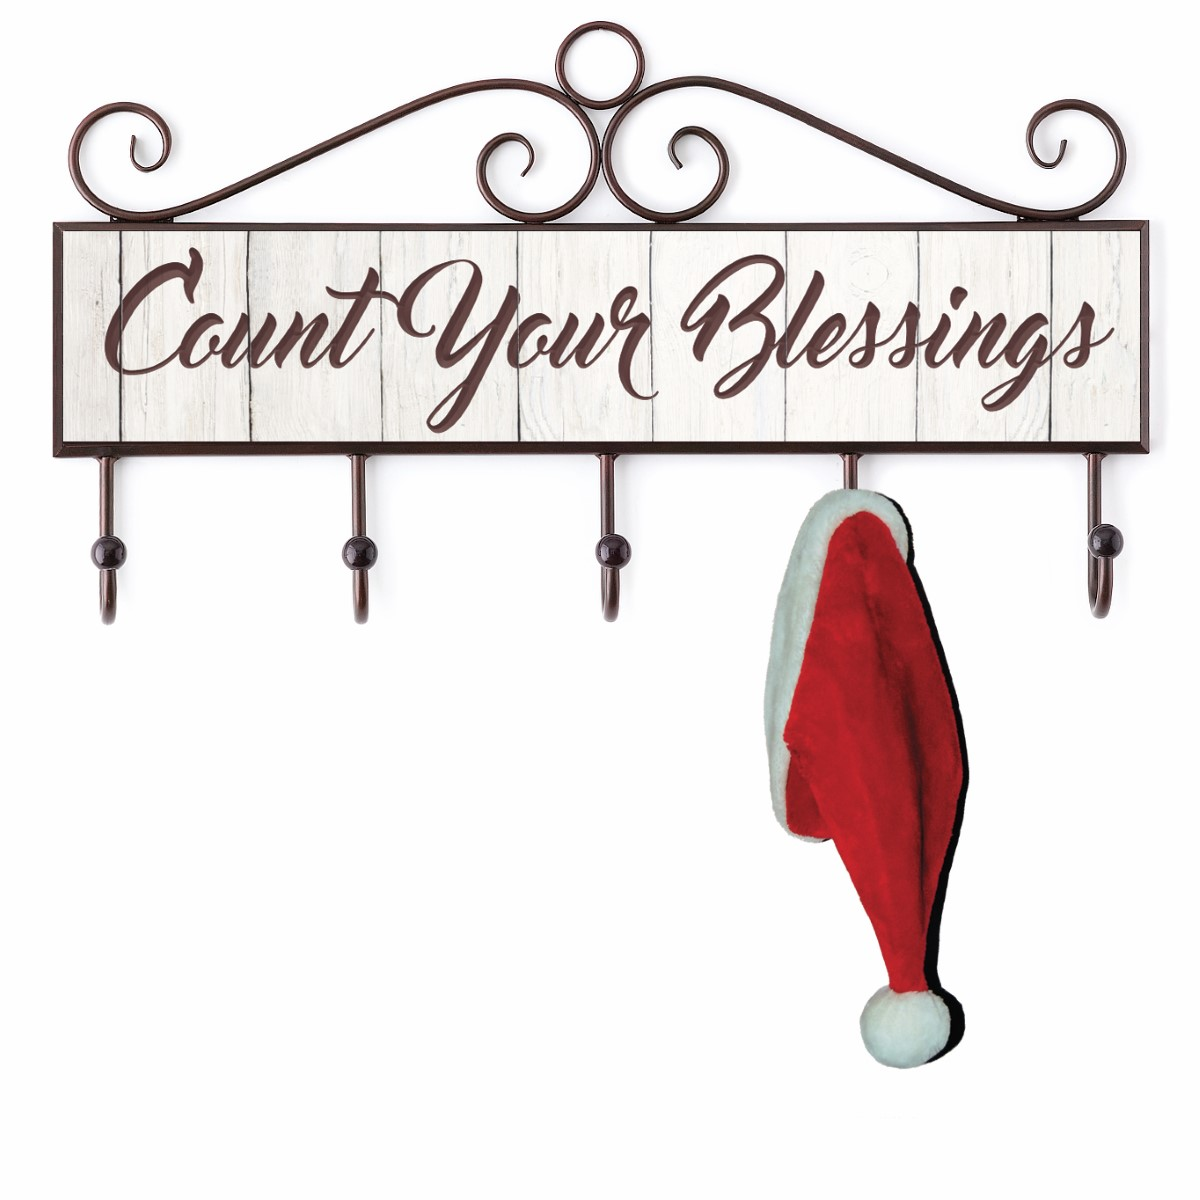 Count Your Blessings Plaque with Hooks